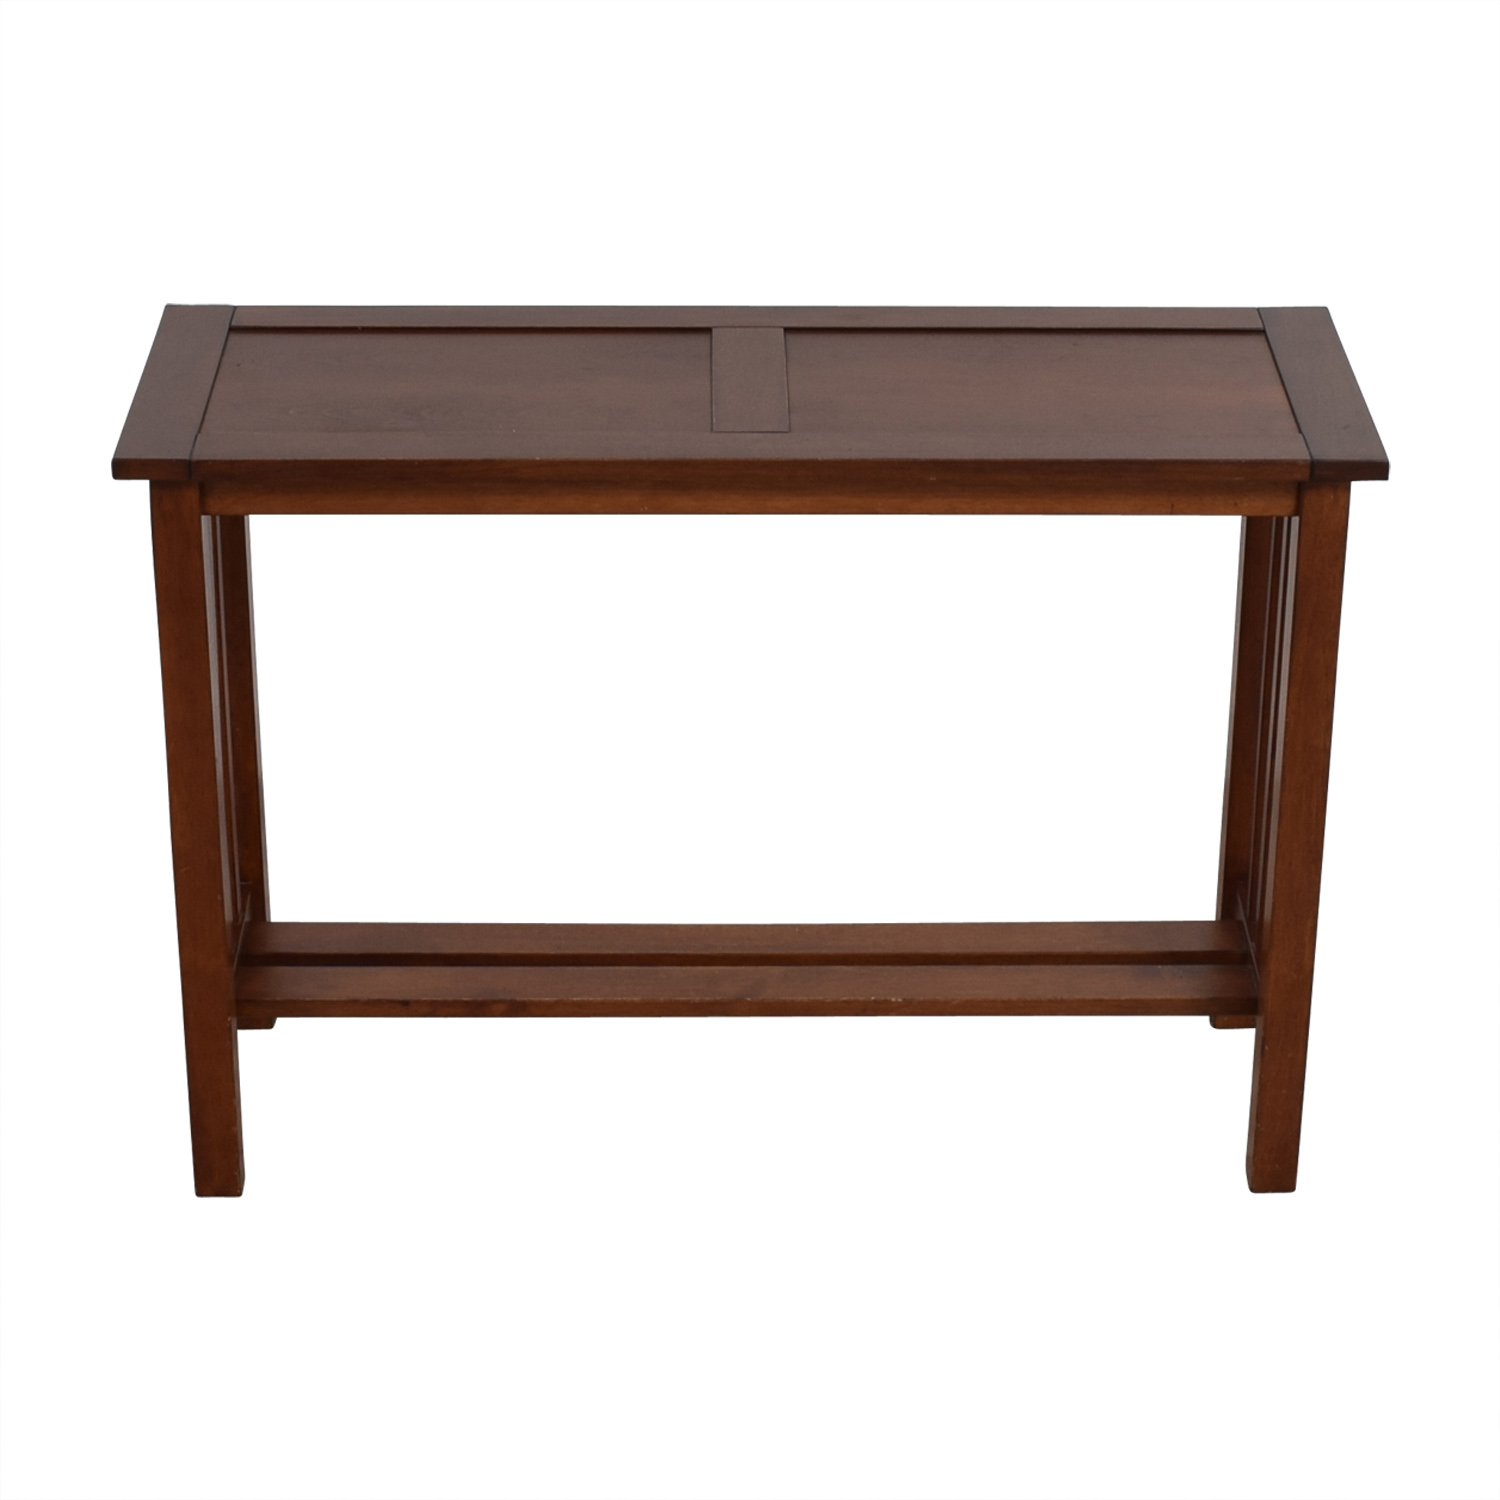 shop Crate & Barrel Console Table Crate & Barrel Tables